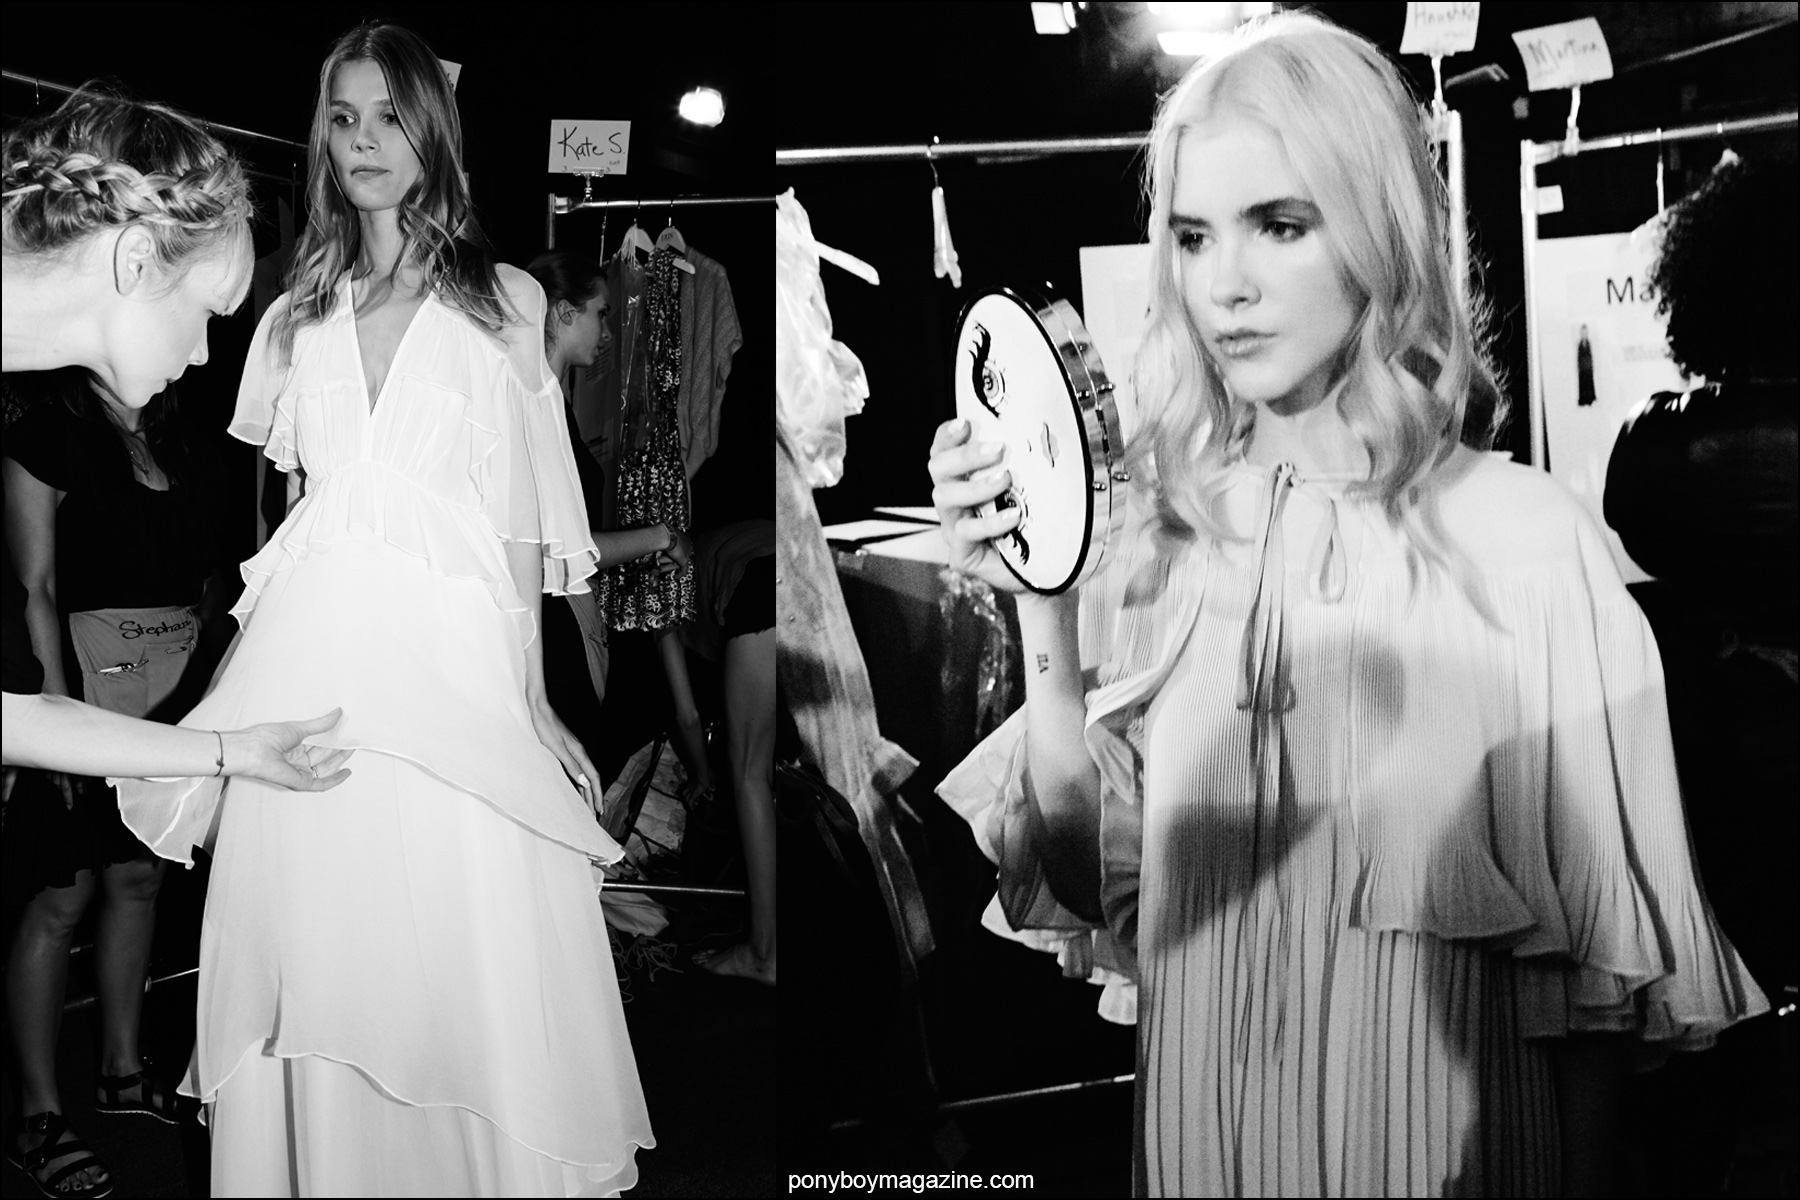 Models snapped backstage in chiffon dresses, Erin Fetherston Spring/Summer 2016. Photography for Ponyboy magazine NY by Alexander Thompson.